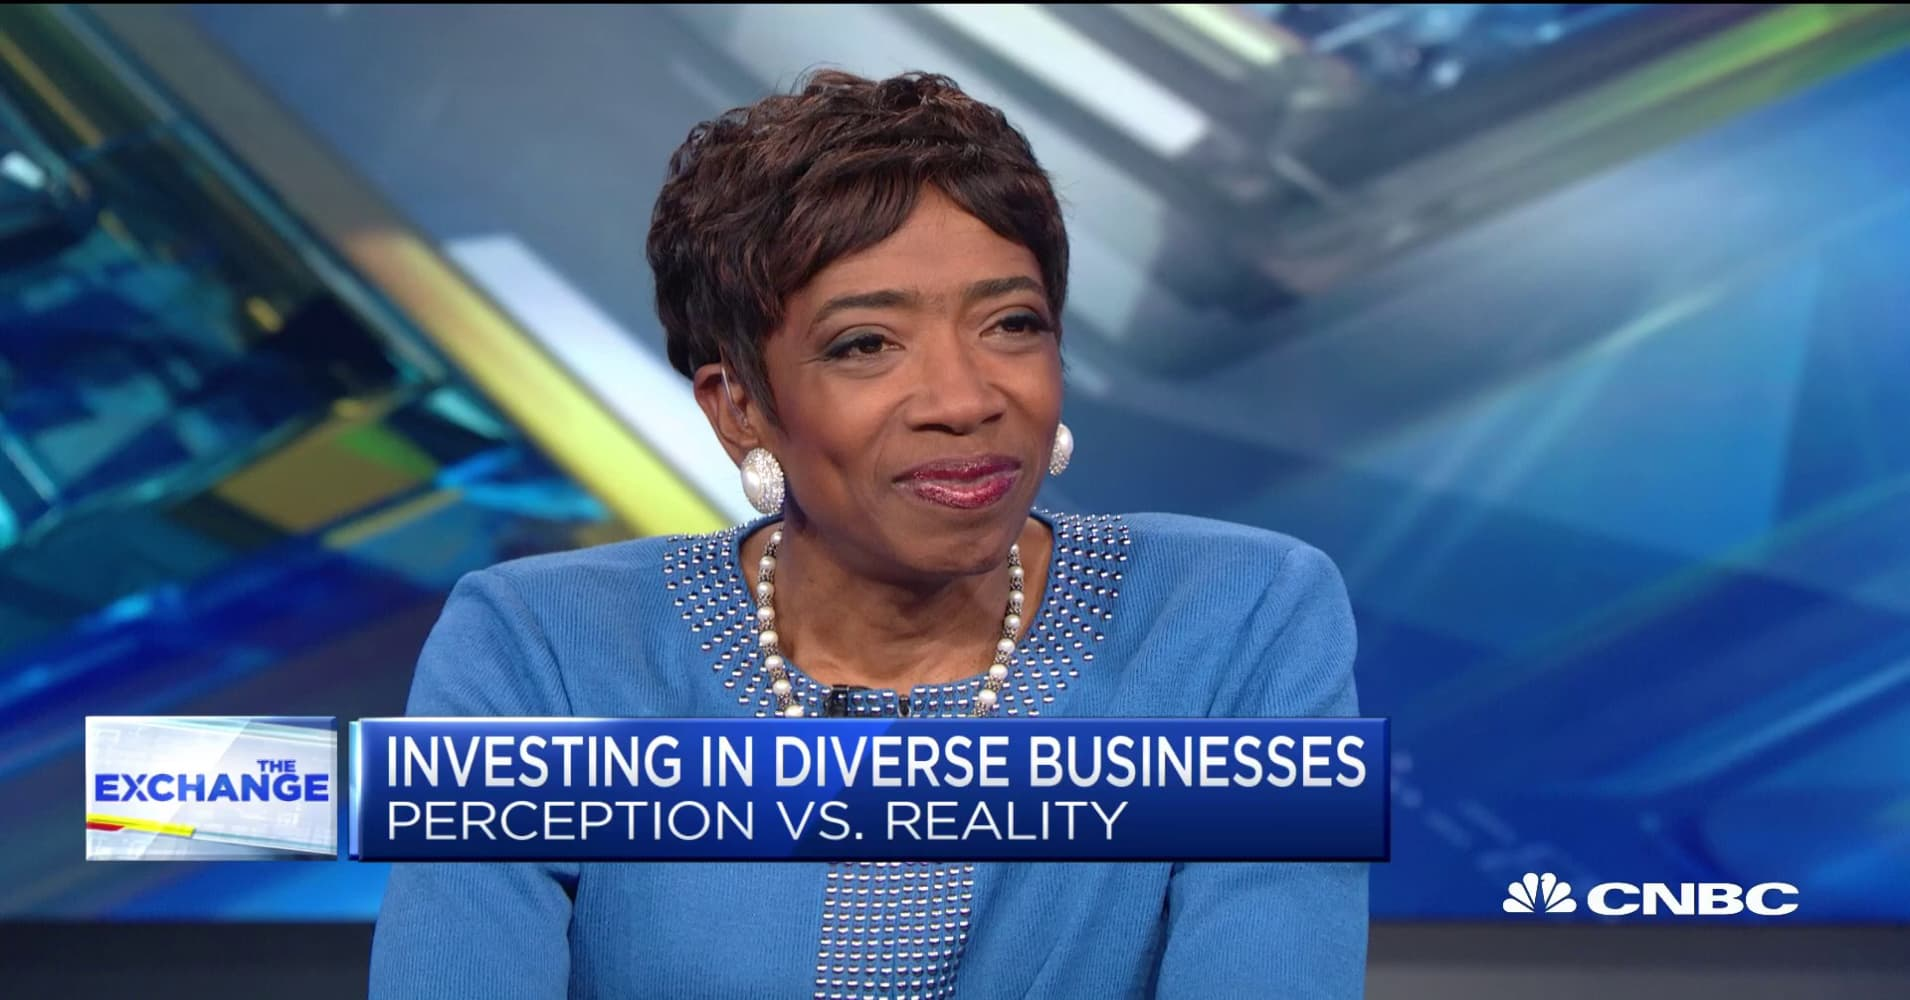 Morgan Stanley's Carla Harris on investing in diverse businesses